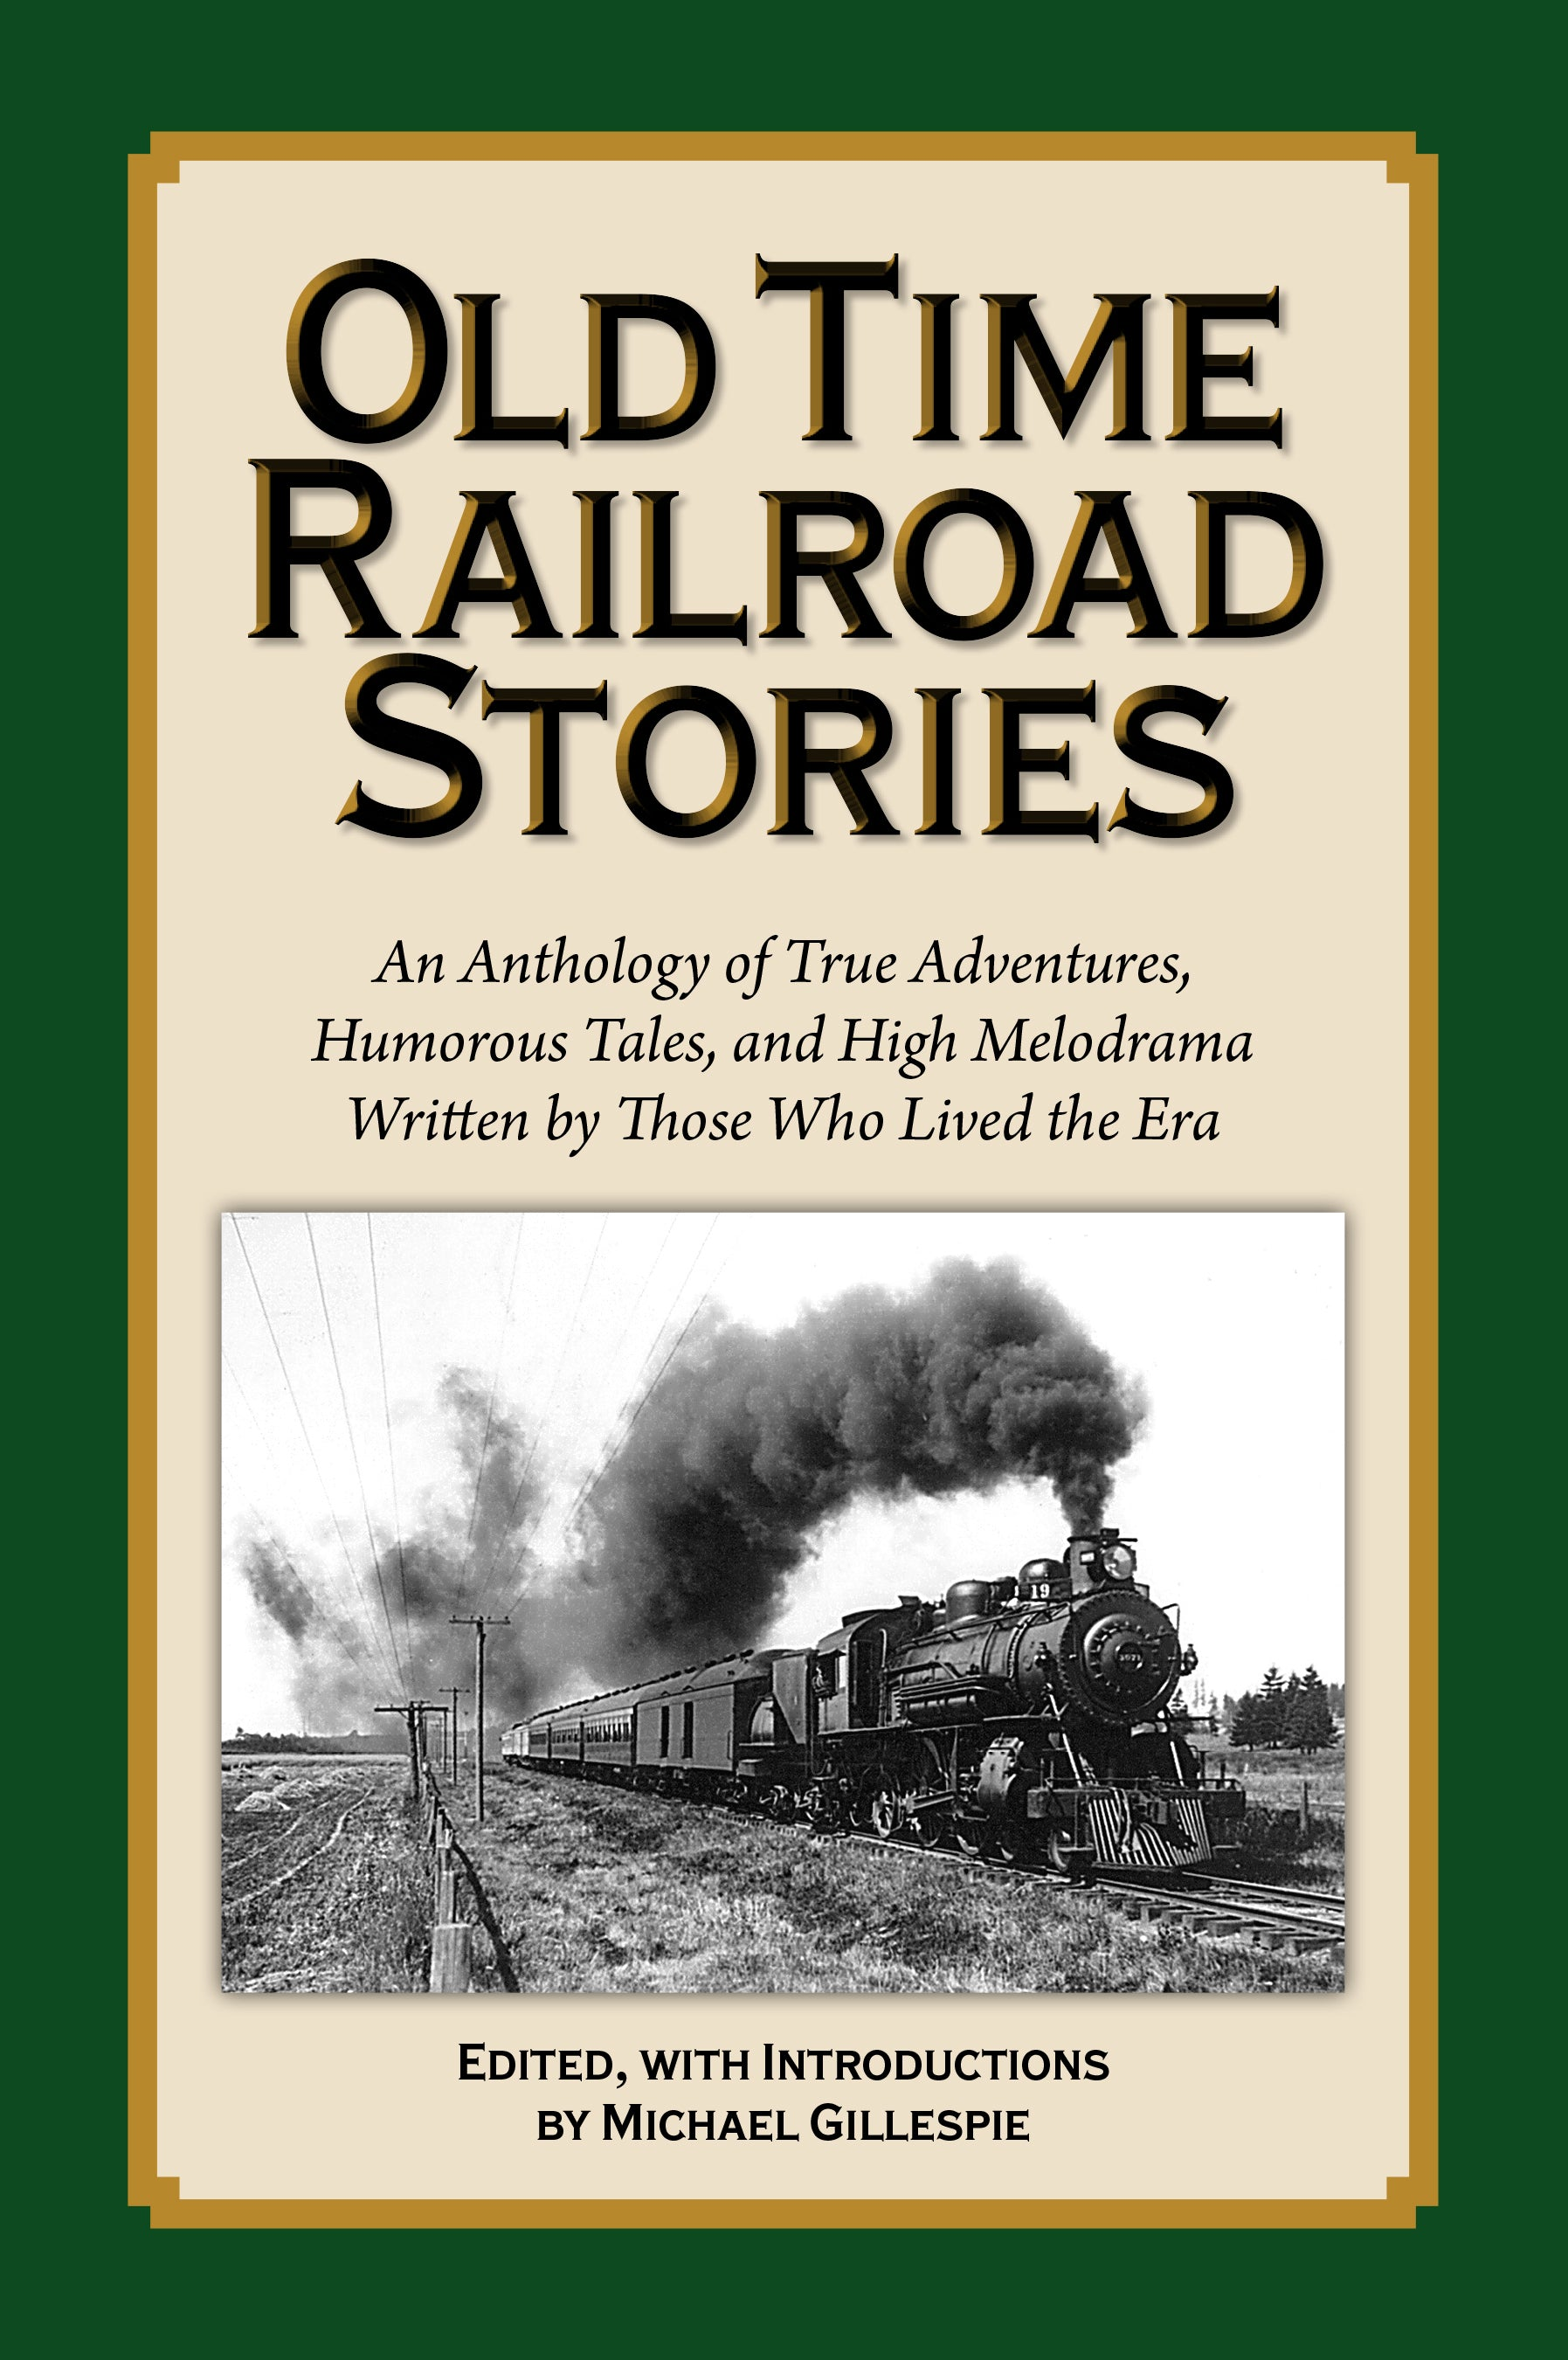 Old Time Railroad Stories by Michael Gilespie